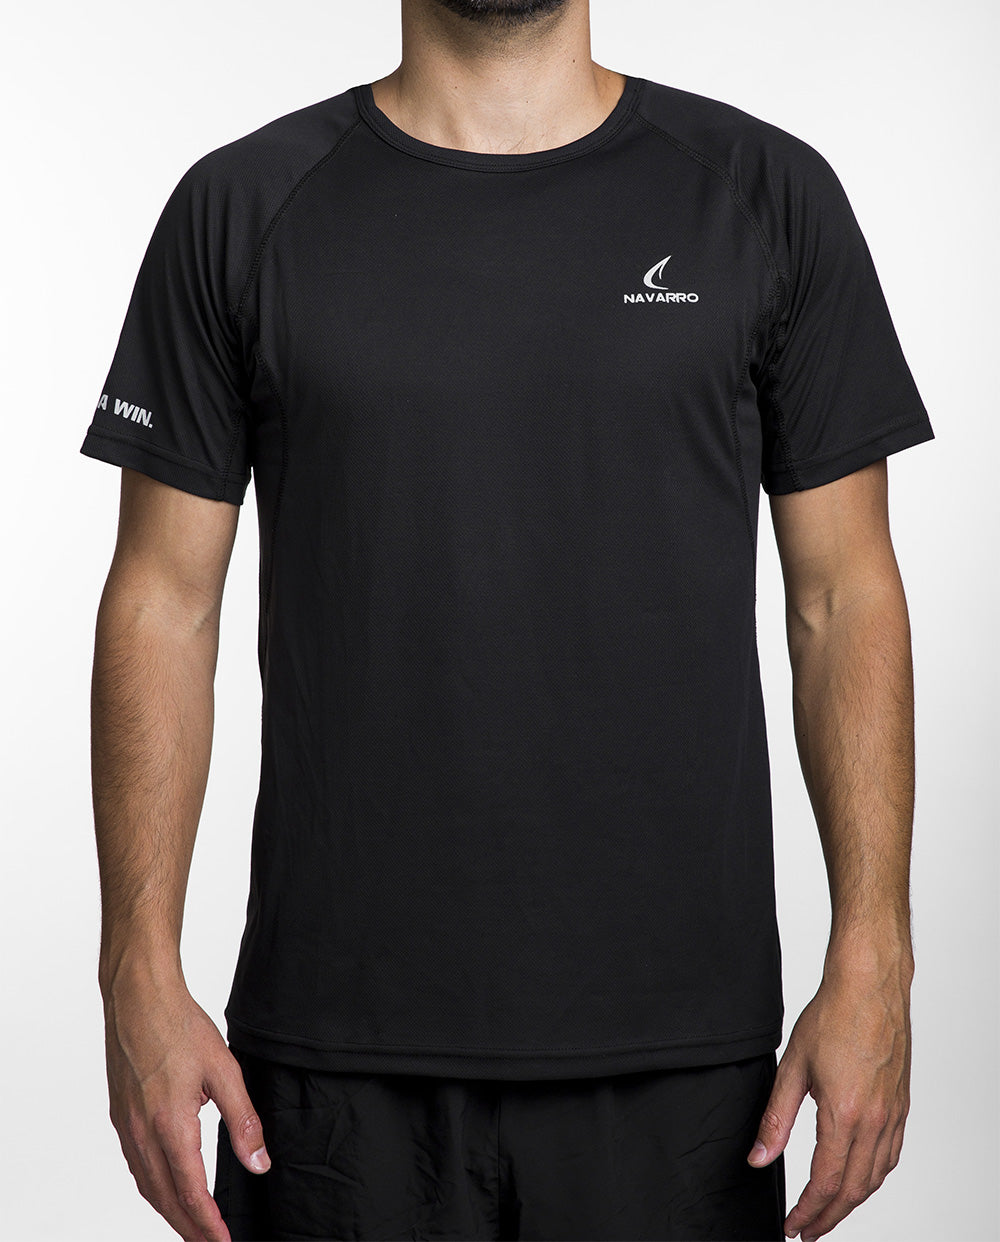 Running Lightweight T-shirt חולצת ריצה